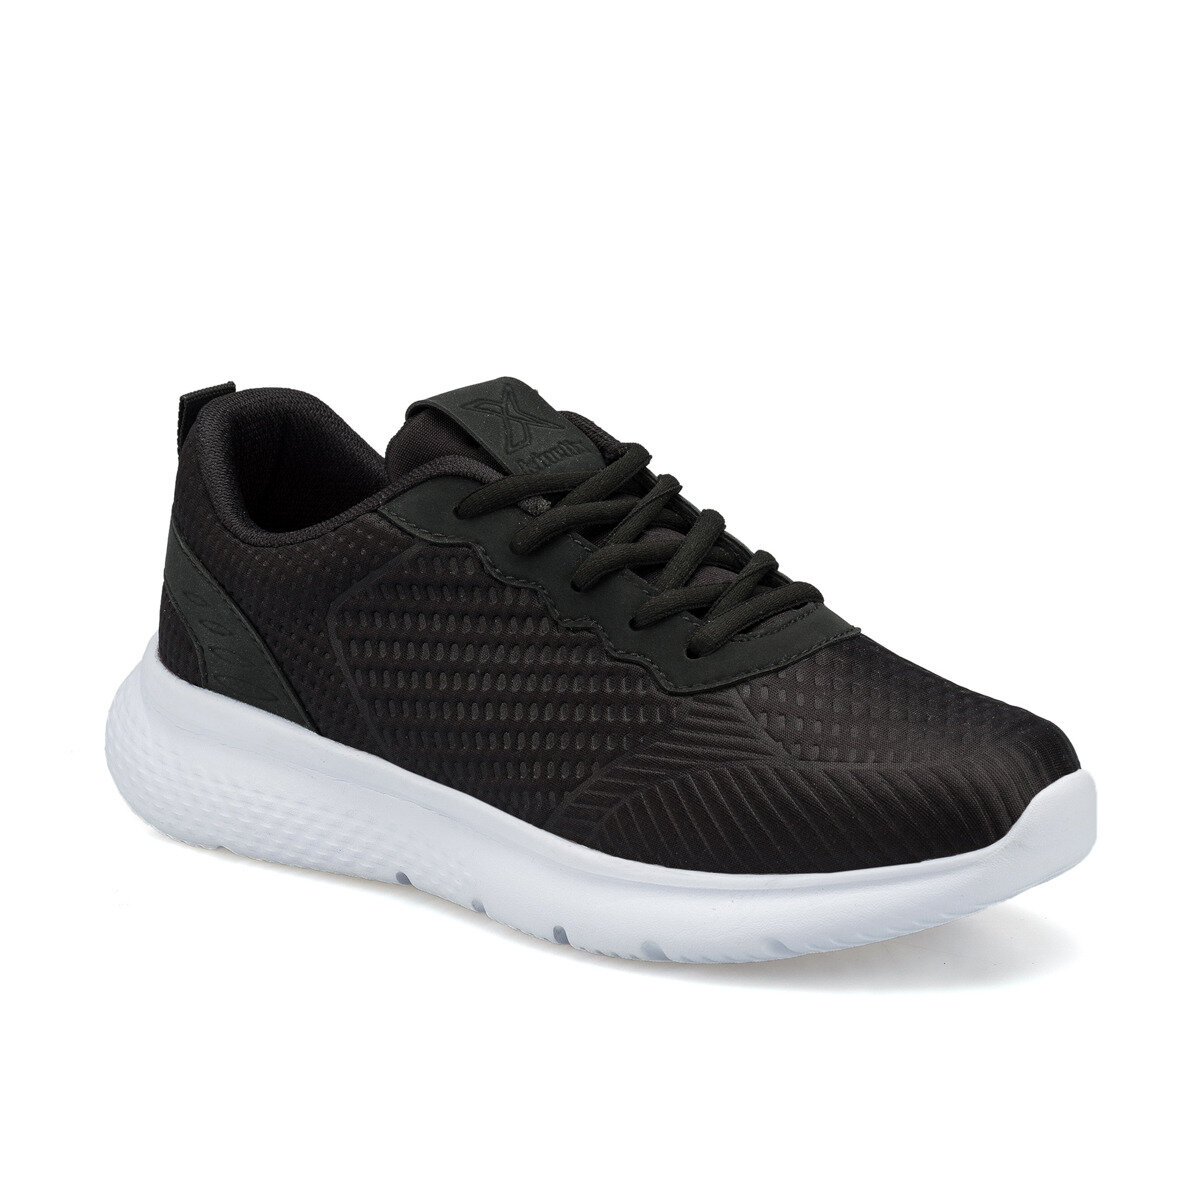 FLO BARNES W Black Women 'S Sneaker Shoes KINETIX